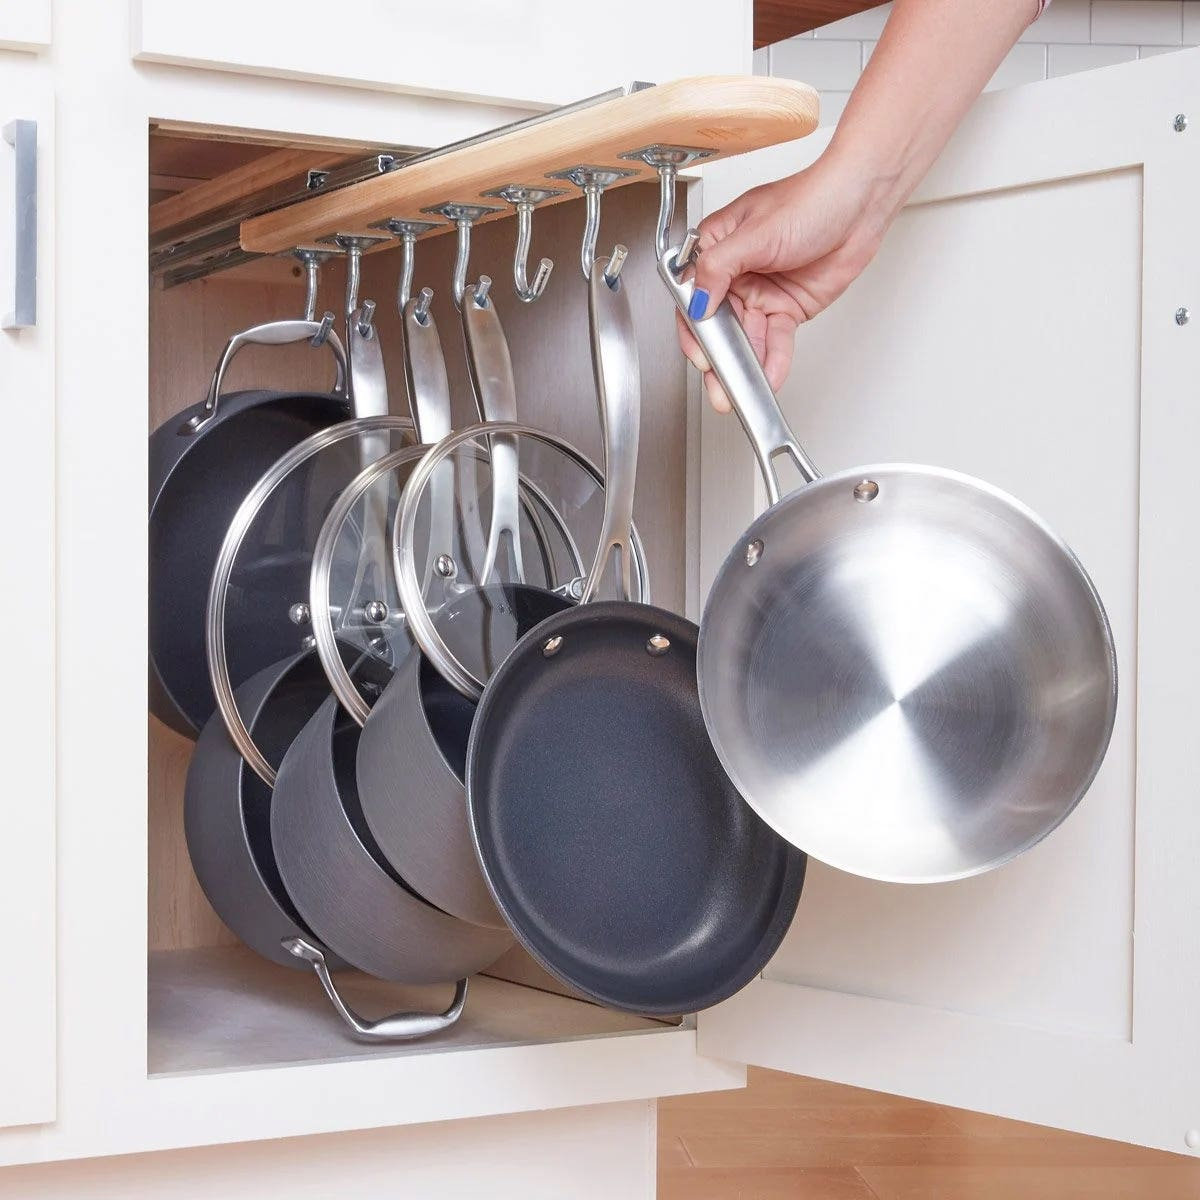 Pots and Pans Pull-Out